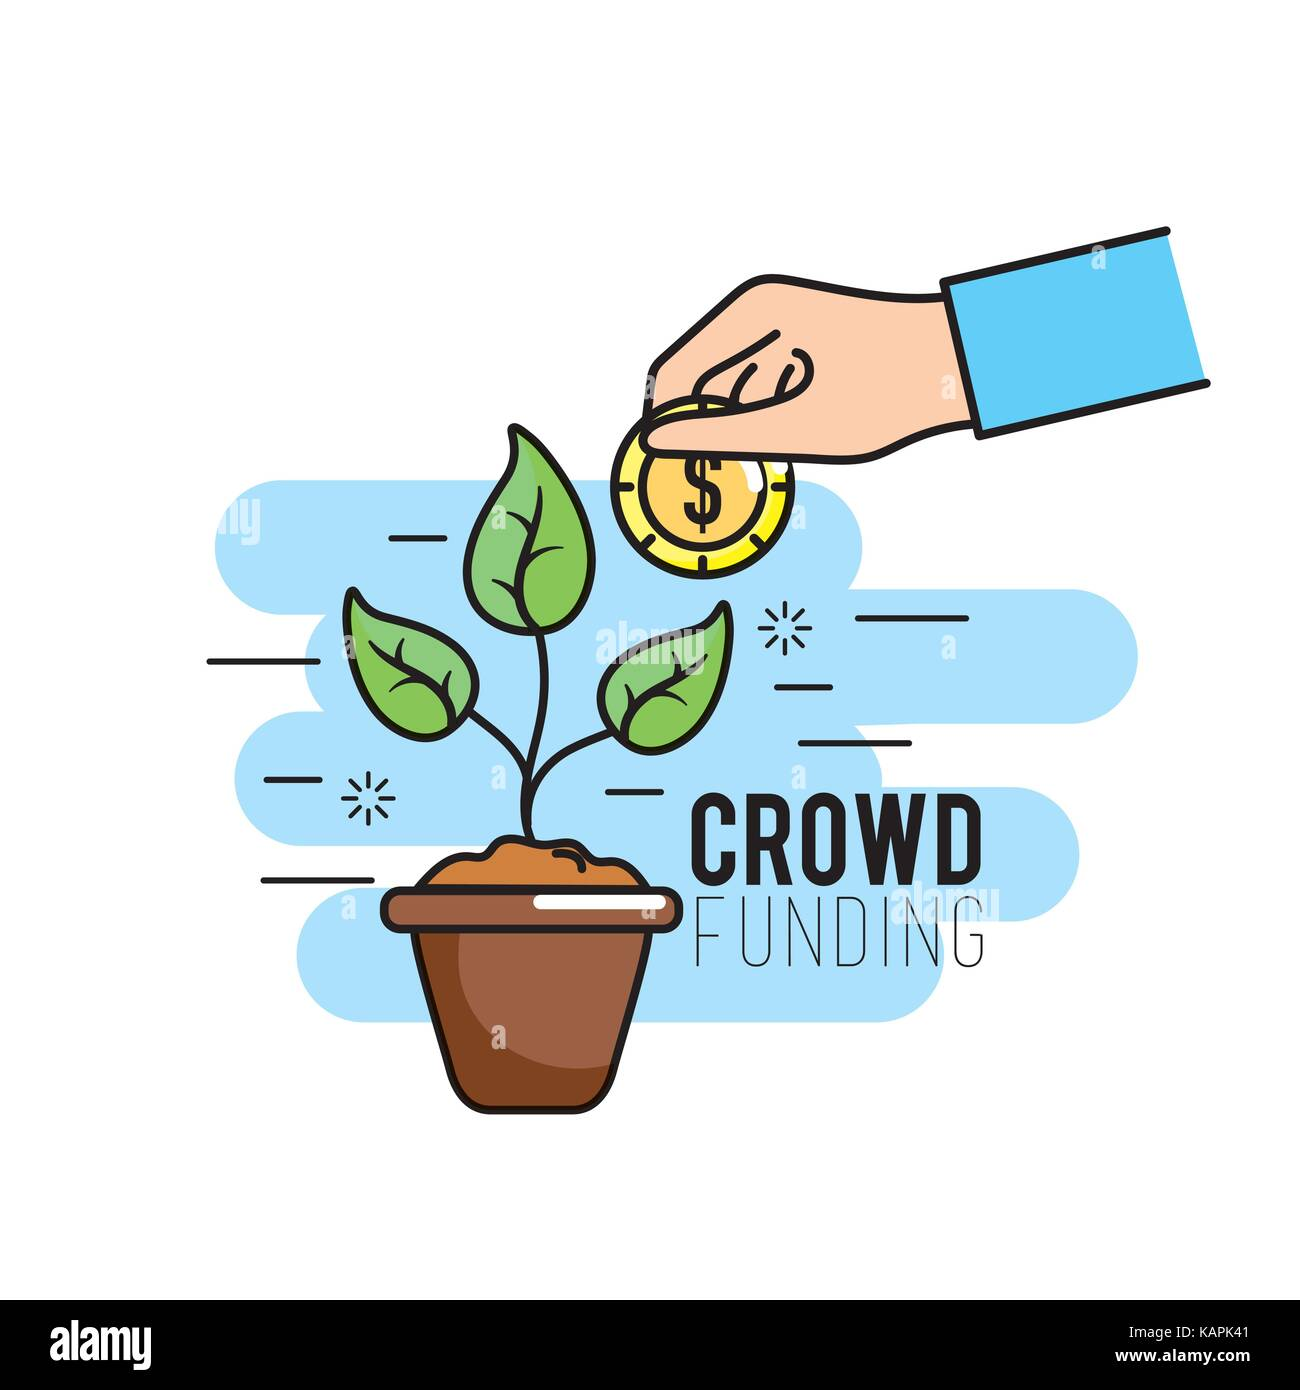 Crowdfunding project management